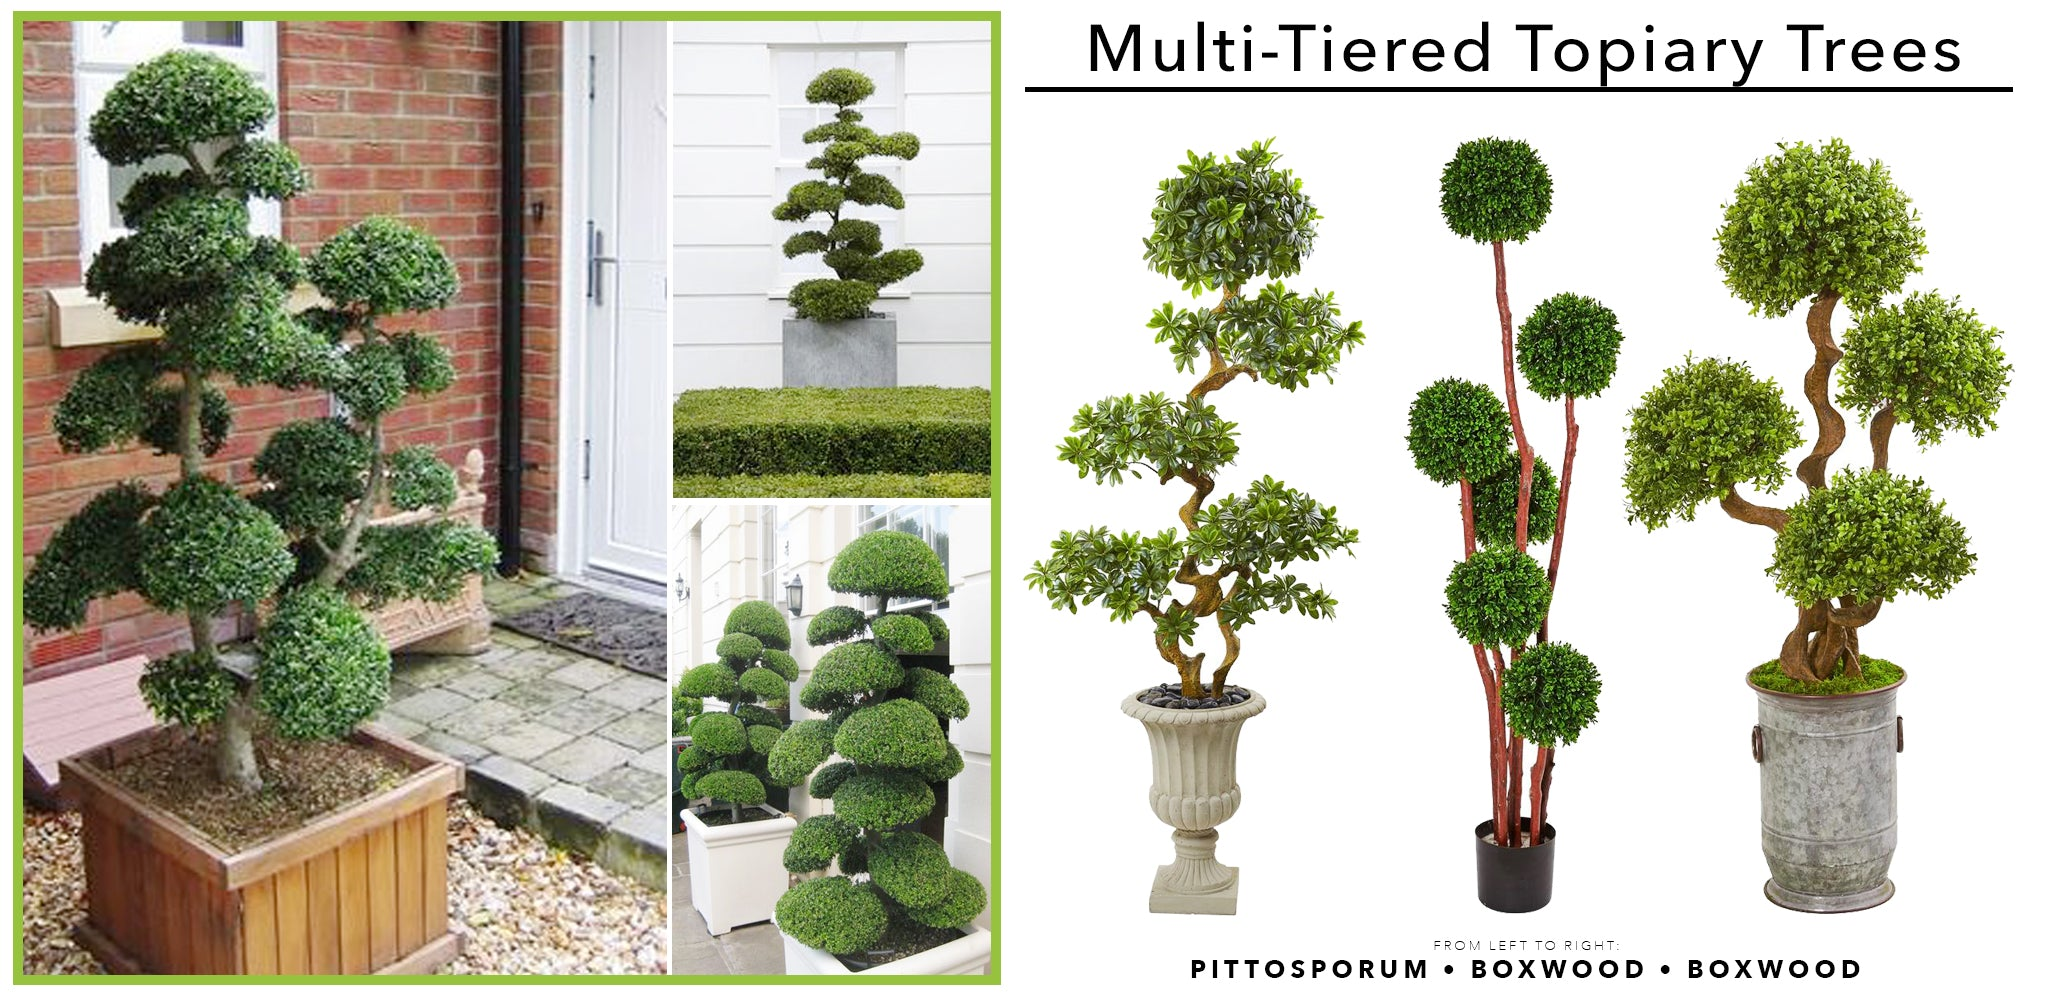 Multi-Tiered Artificial Topiary Trees